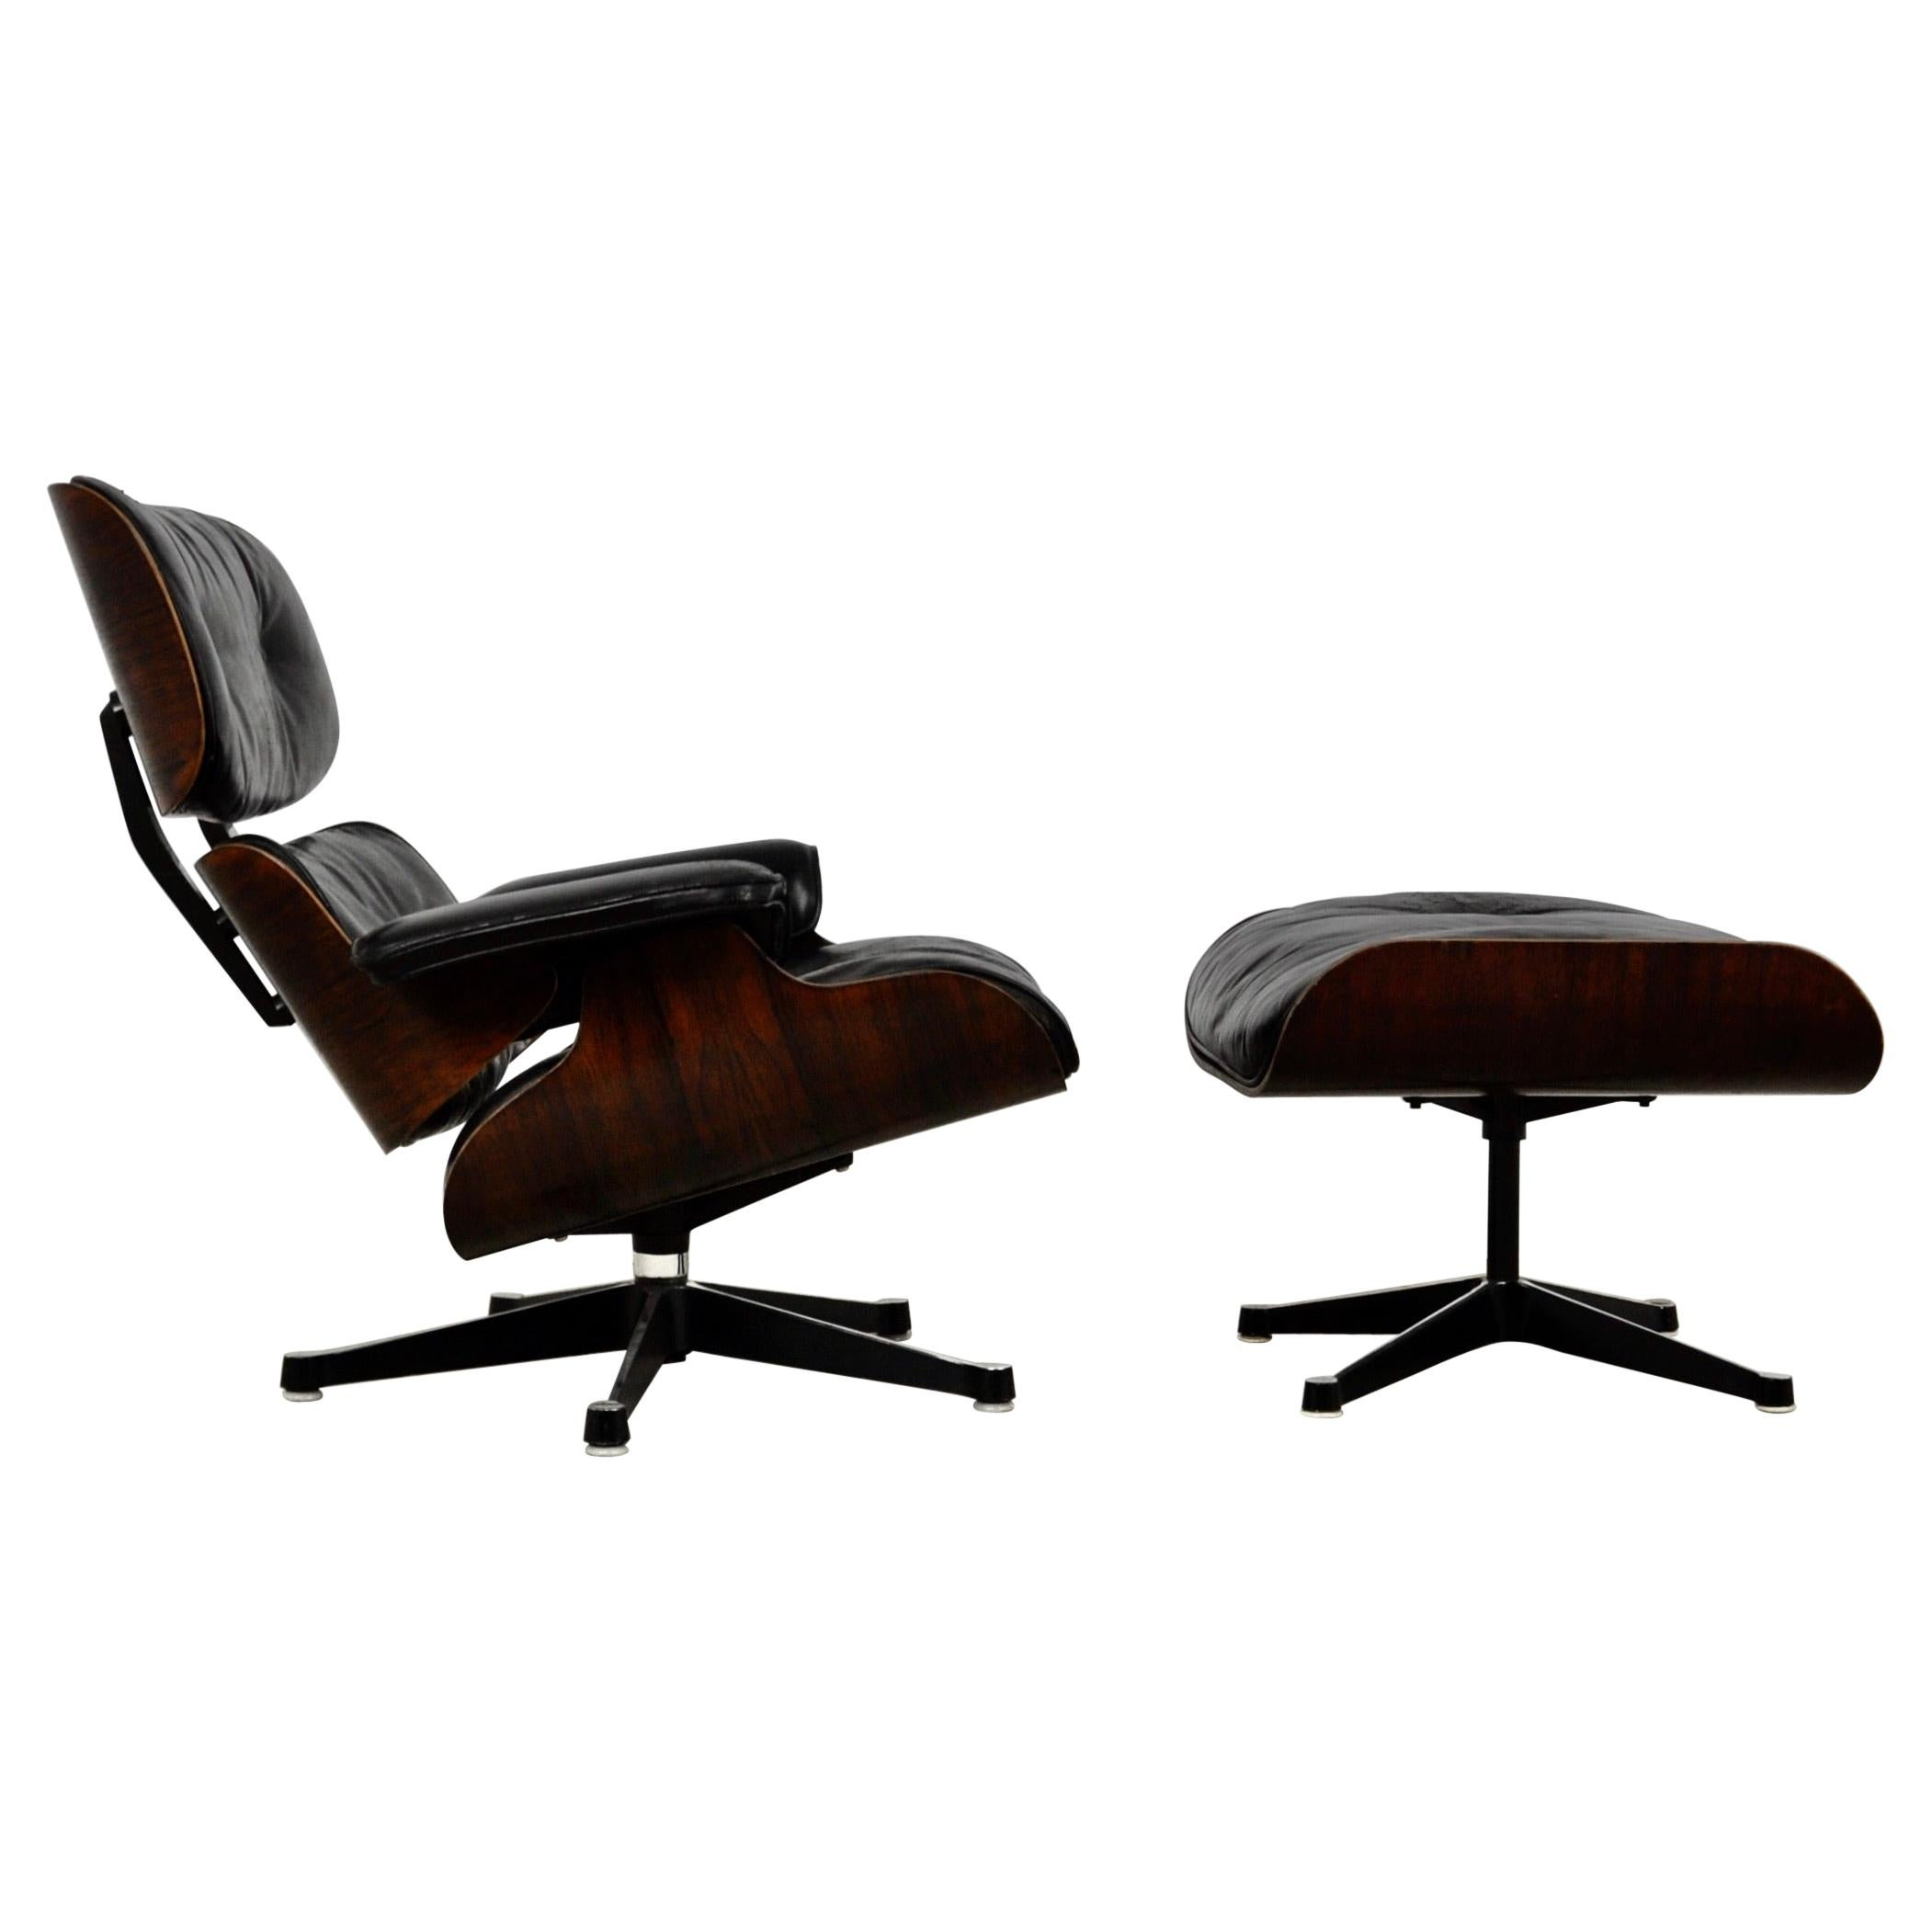 Lounge Chair by Charles & Ray Eames for Herman Miller, 1970